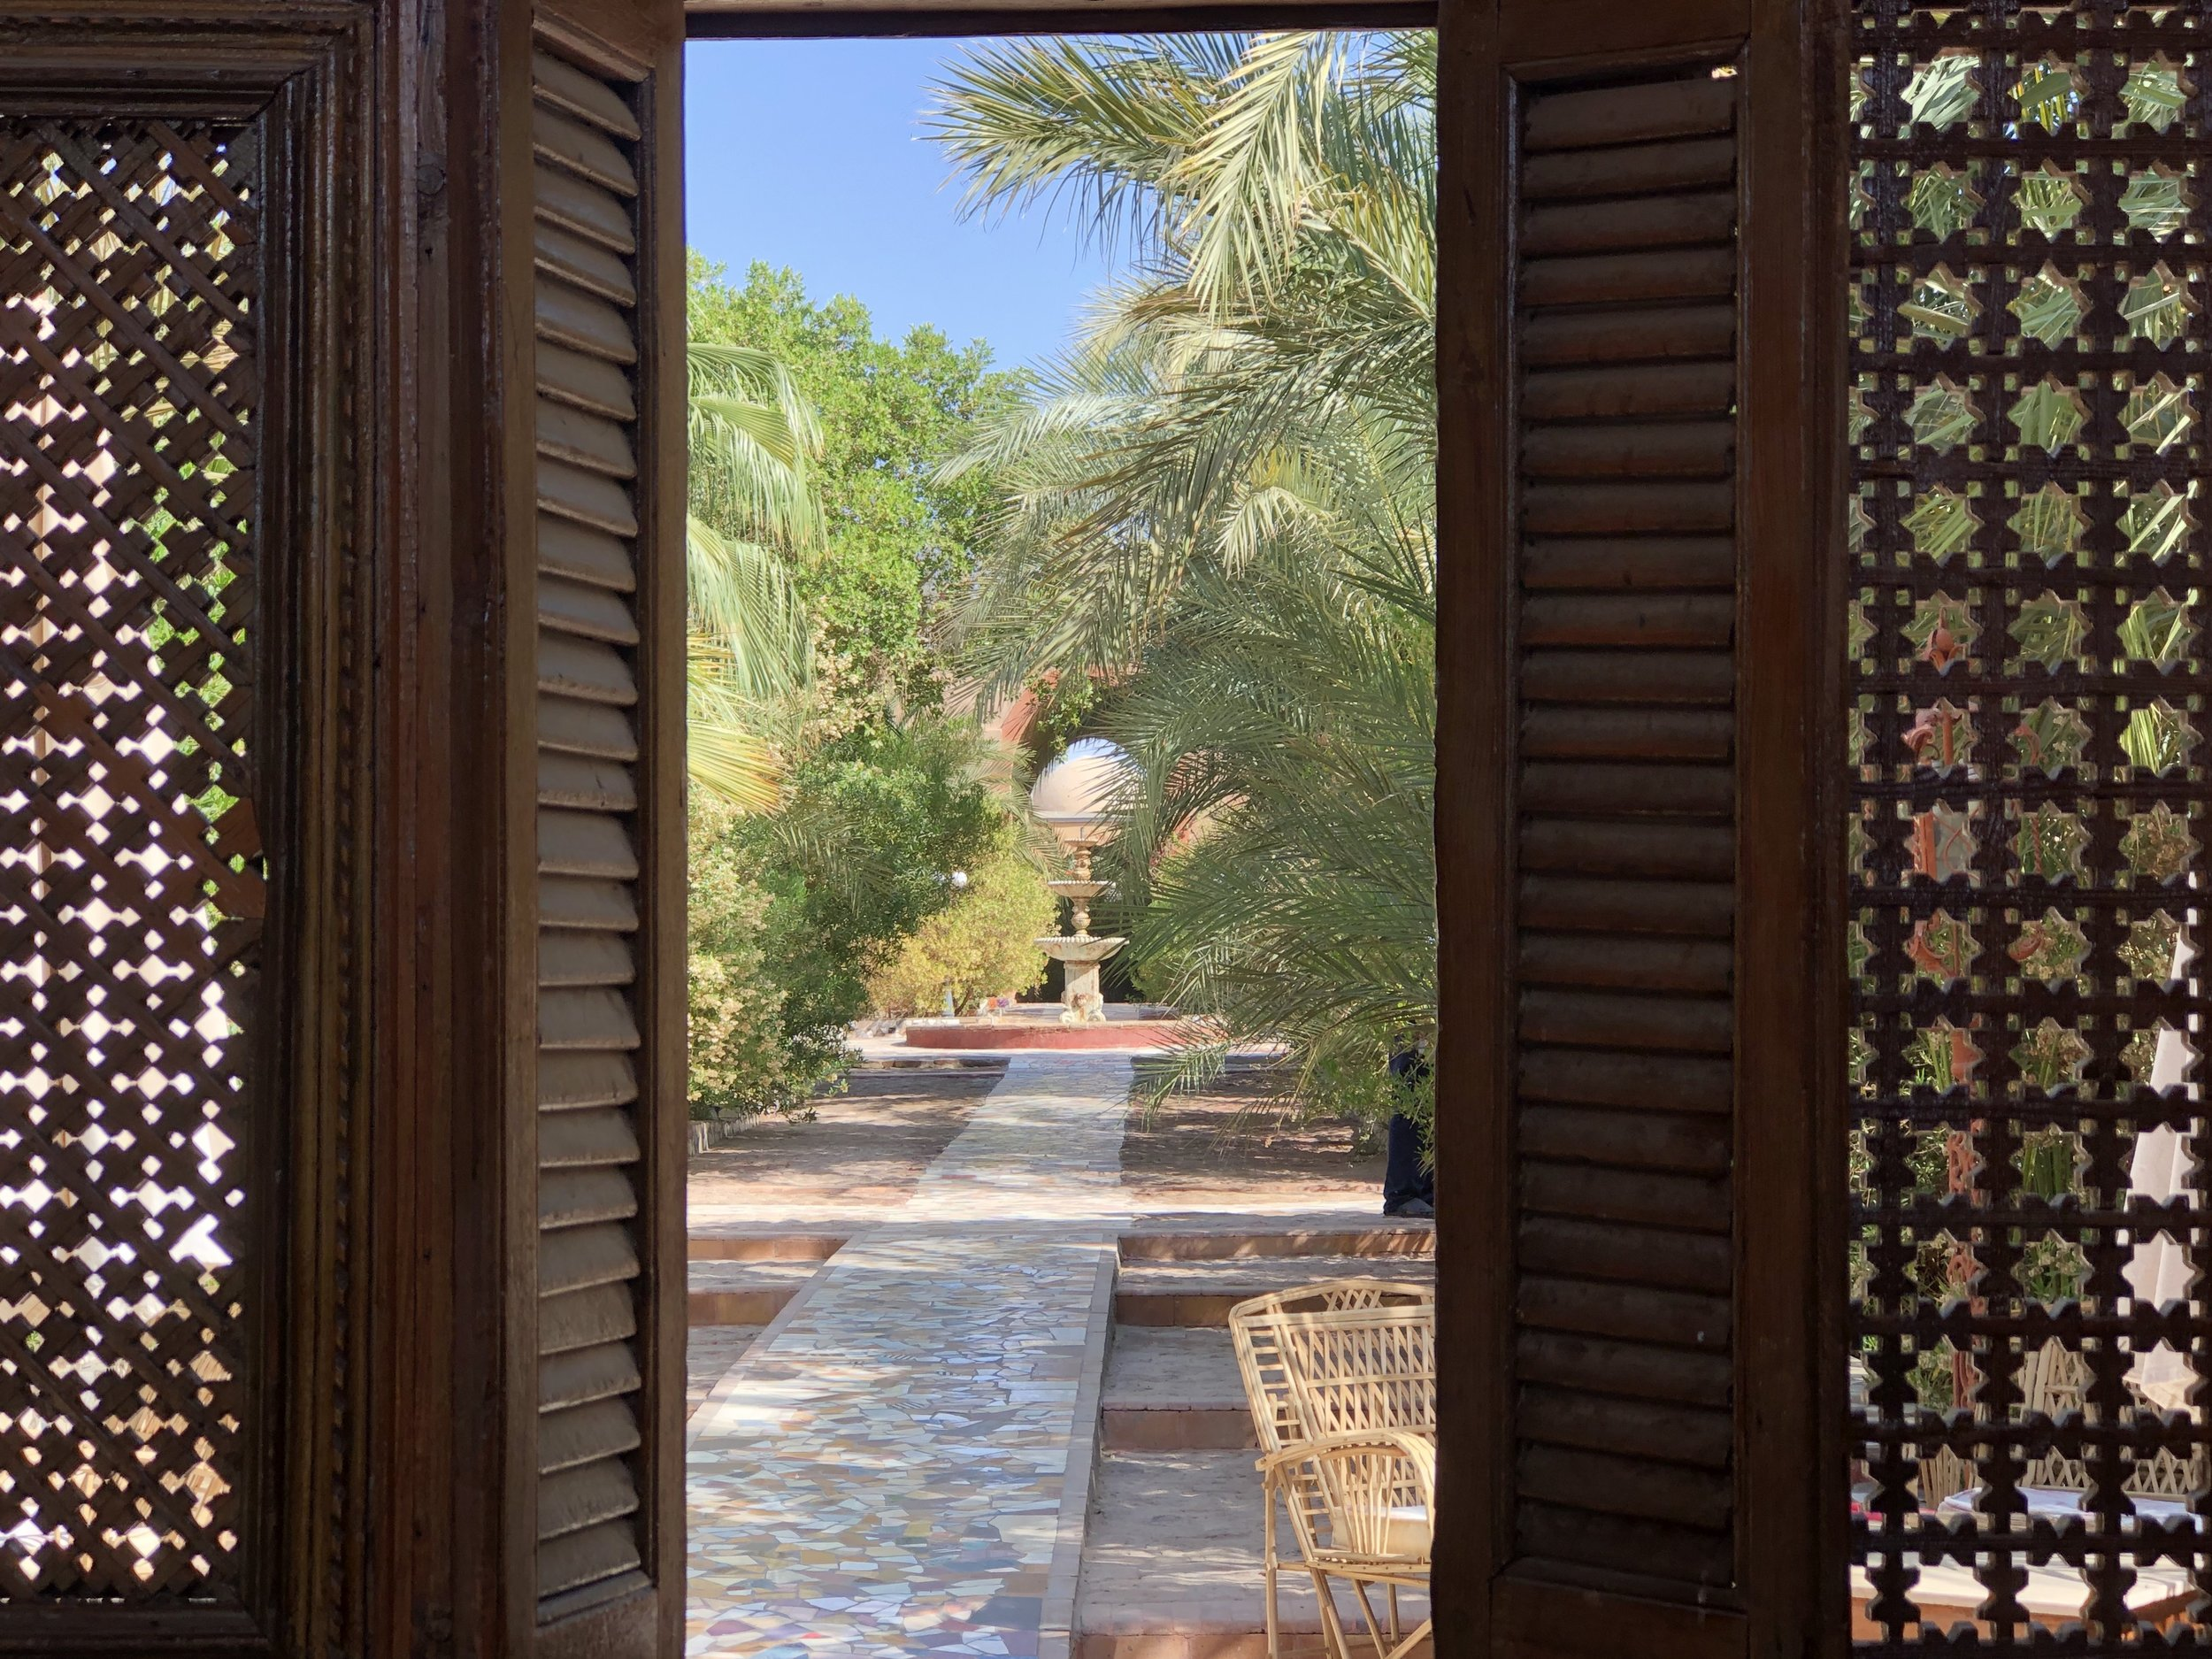 Garden paths made of repurposed tile meander throughout Al Moudira